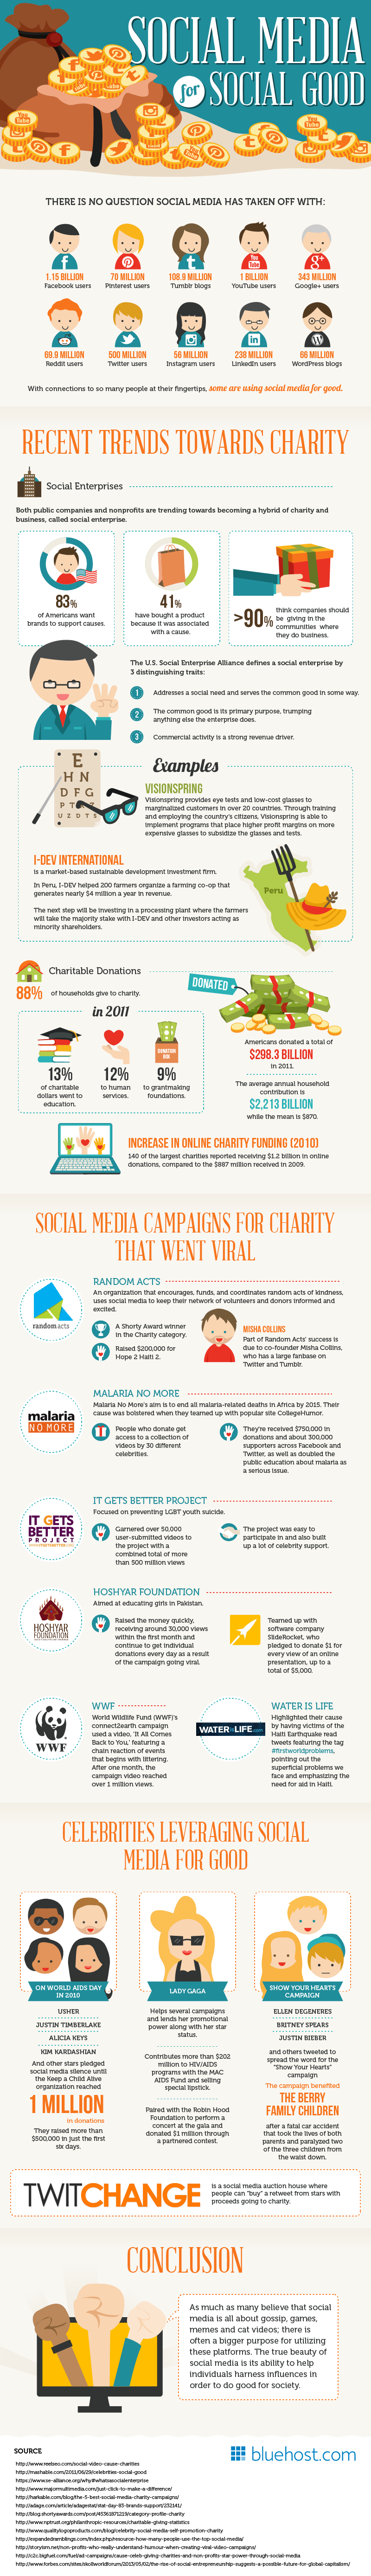 Brands embrace social media for social good [INFOGRAPHIC]